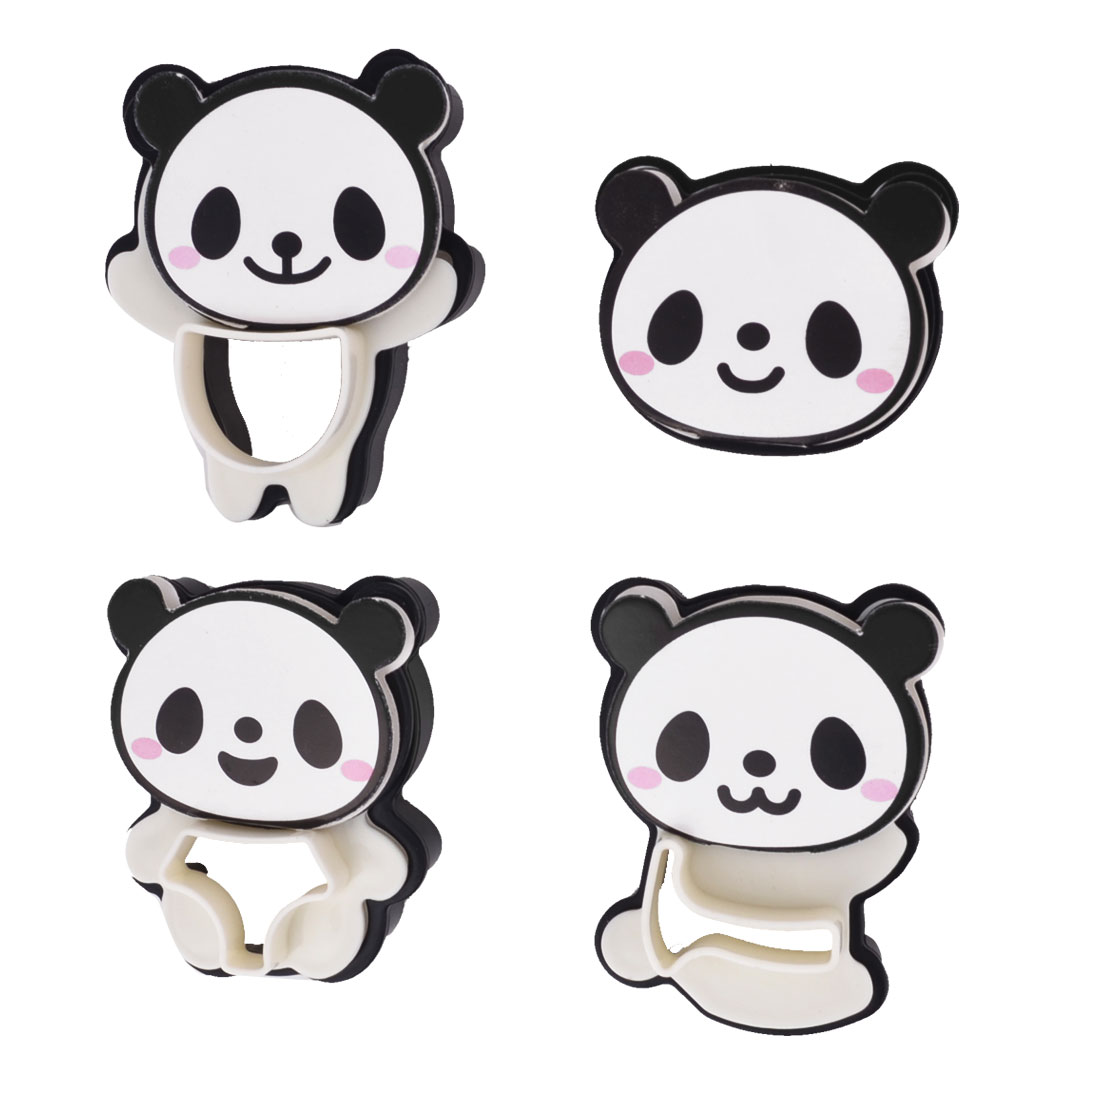 4 Pcs Kitchen Craft Panda Design Food Cookie Cake Cutter Mold